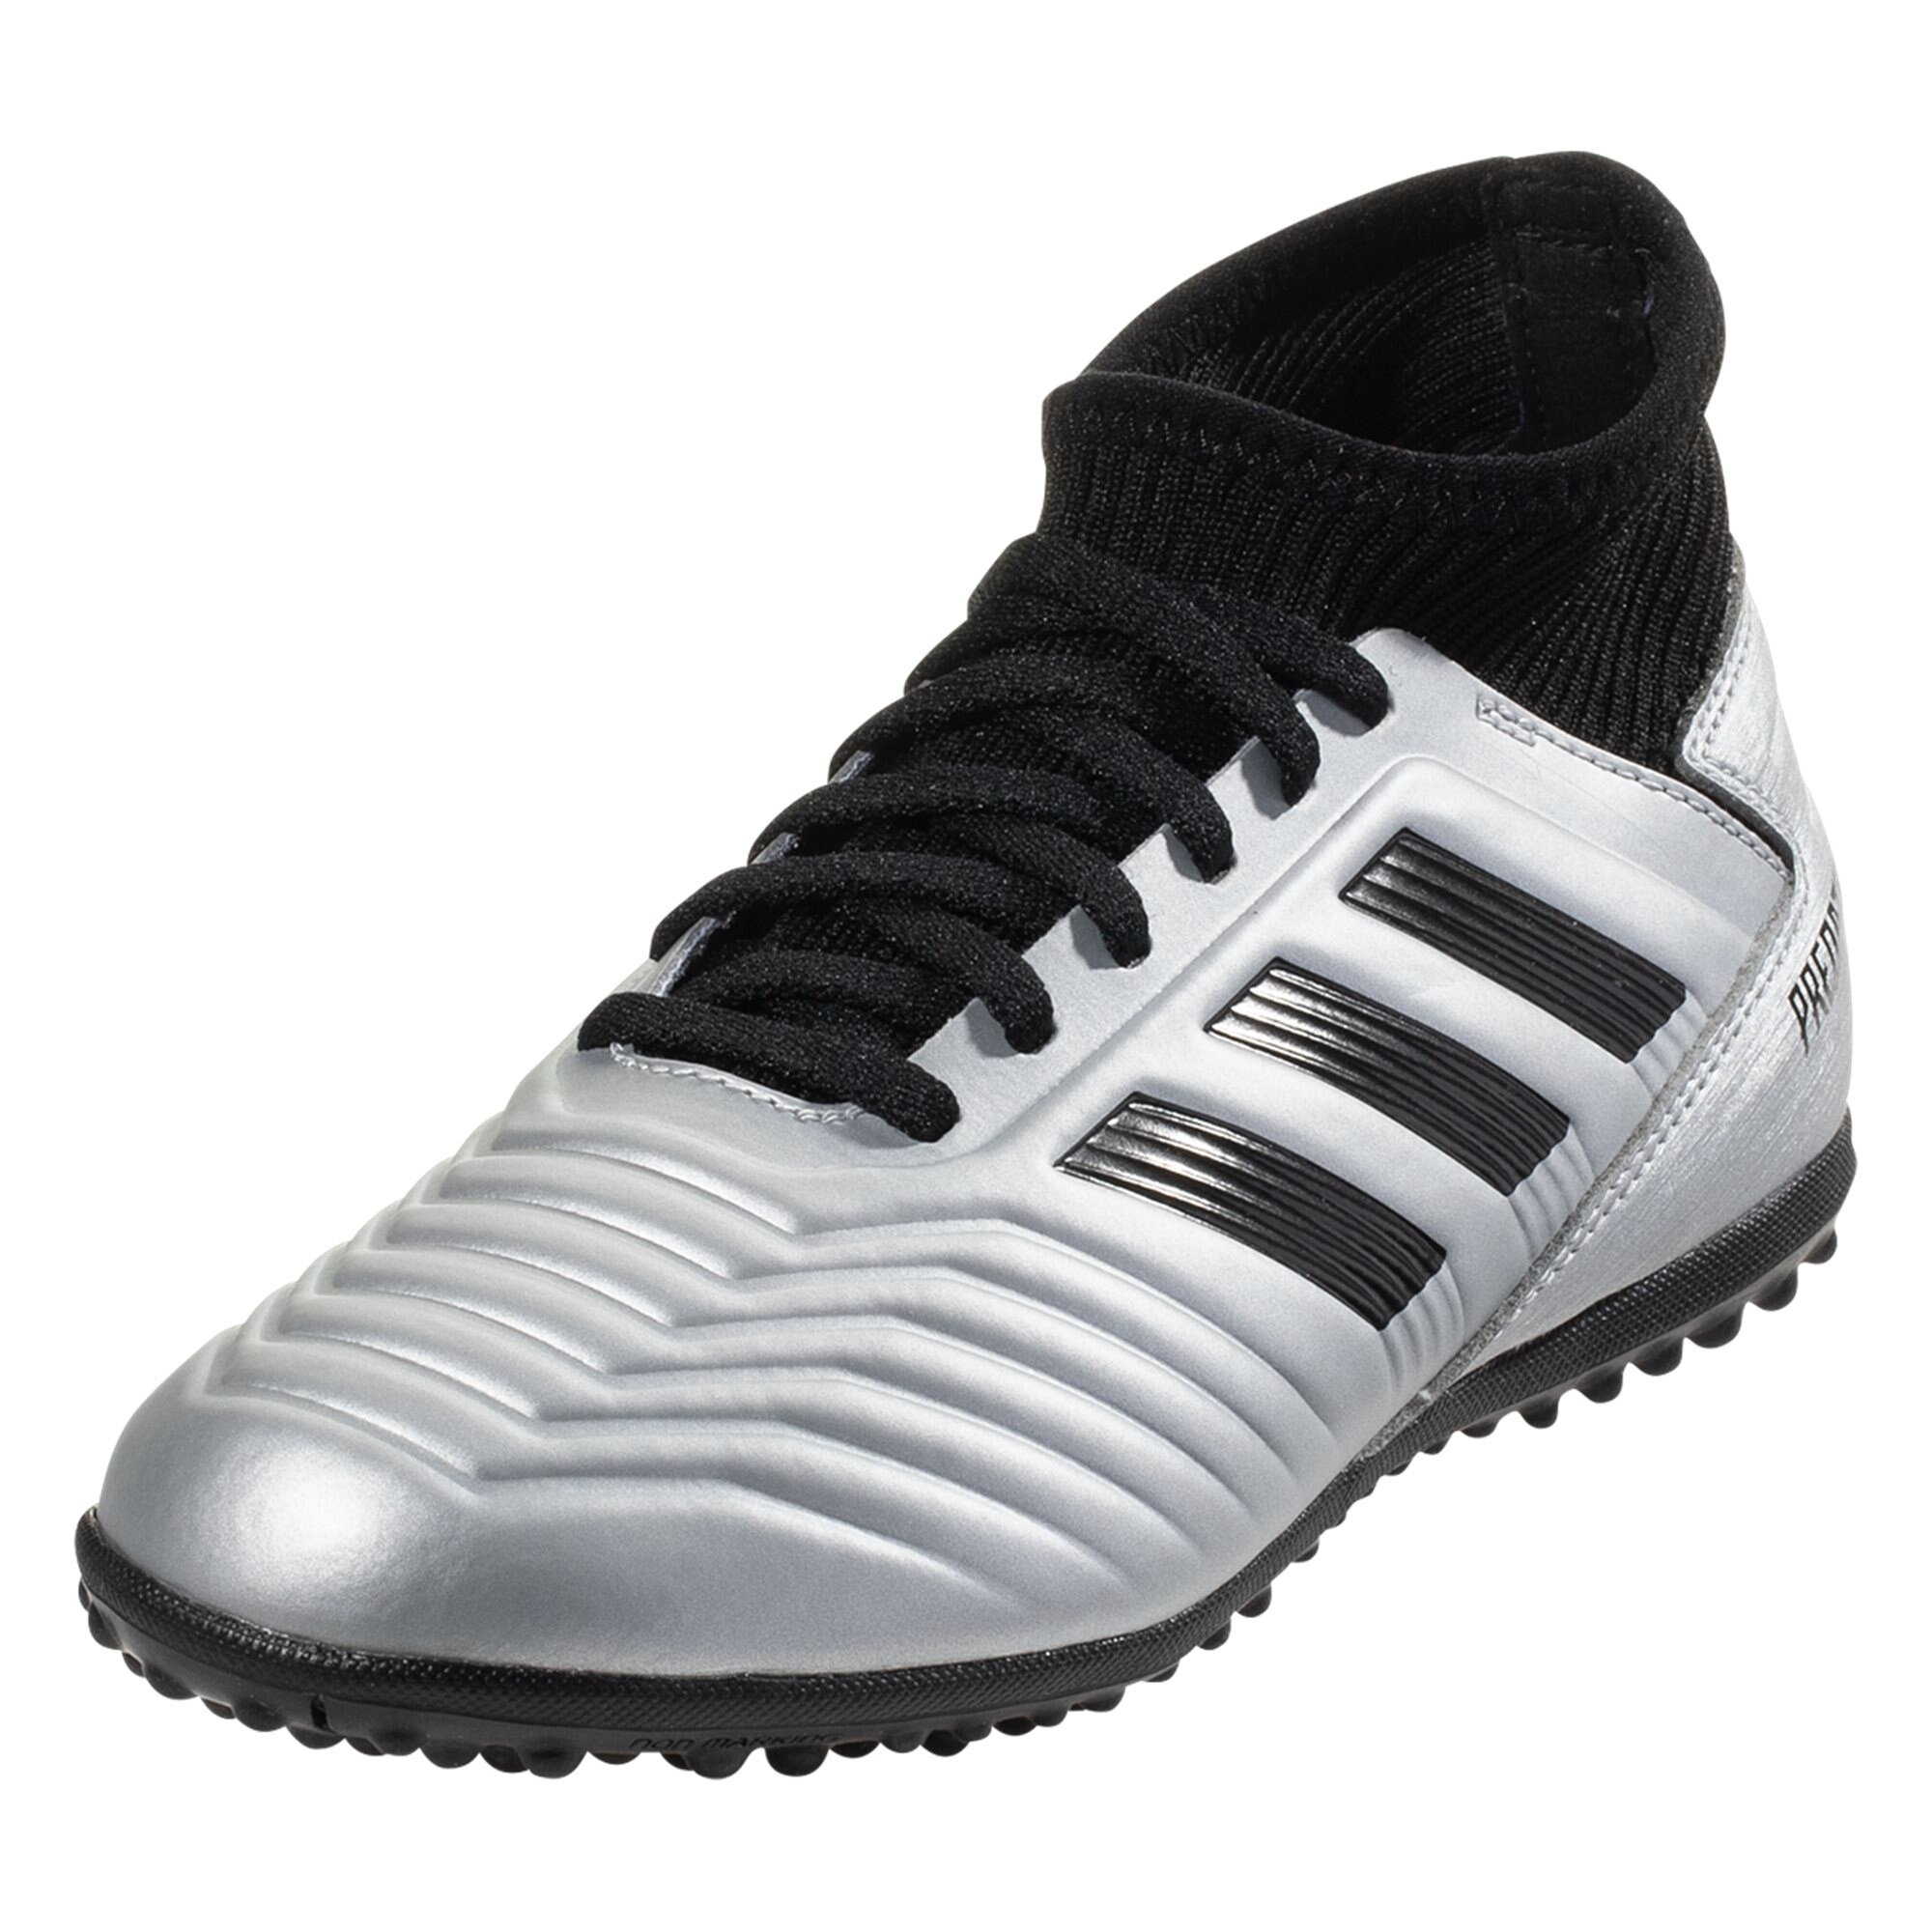 adidas Junior Predator Tango 19.3 TF Turf Soccer Shoe - Metallic Silver / Black / Hi-Res Red